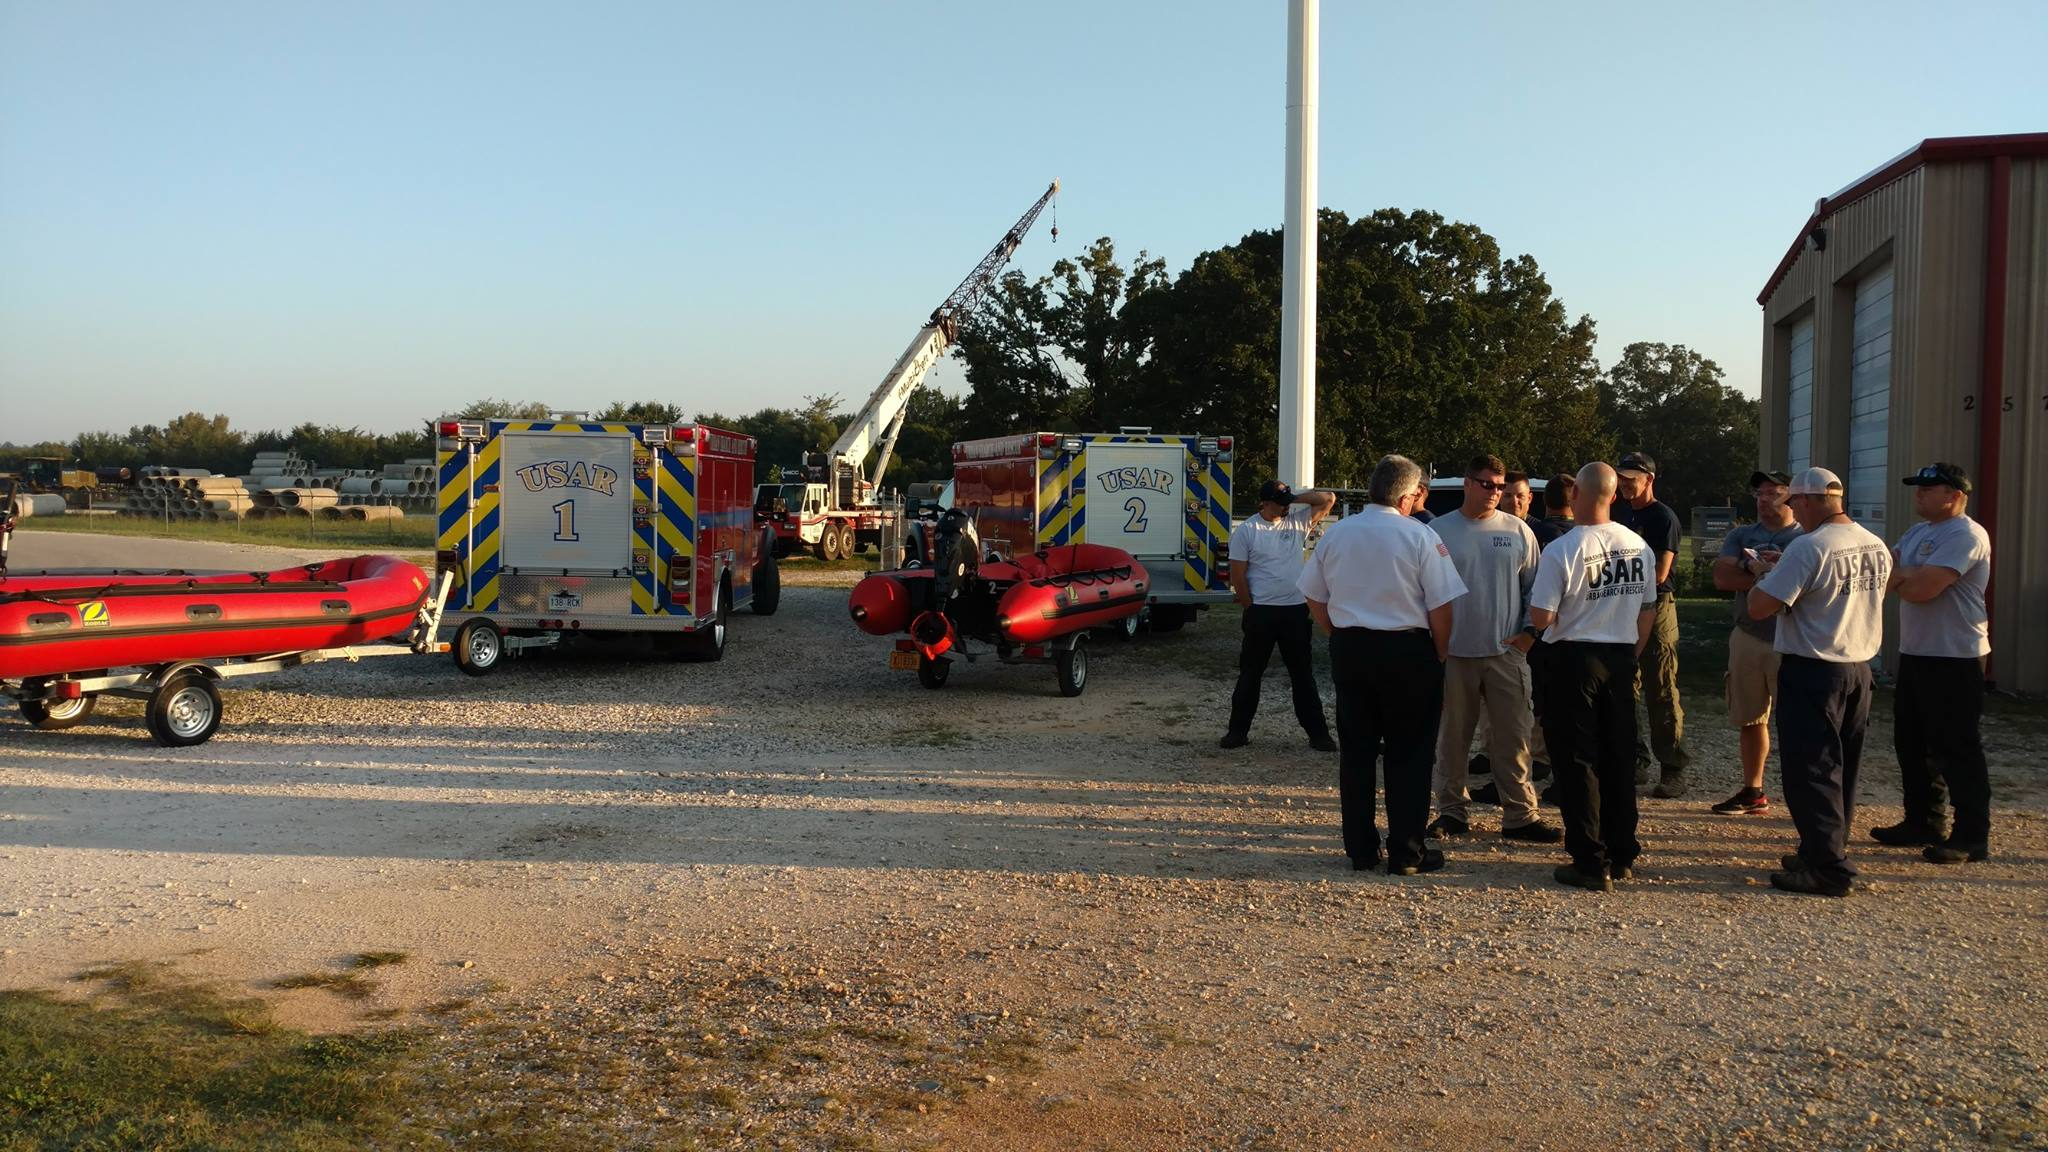 Task force of area firefighters deploying to Texas